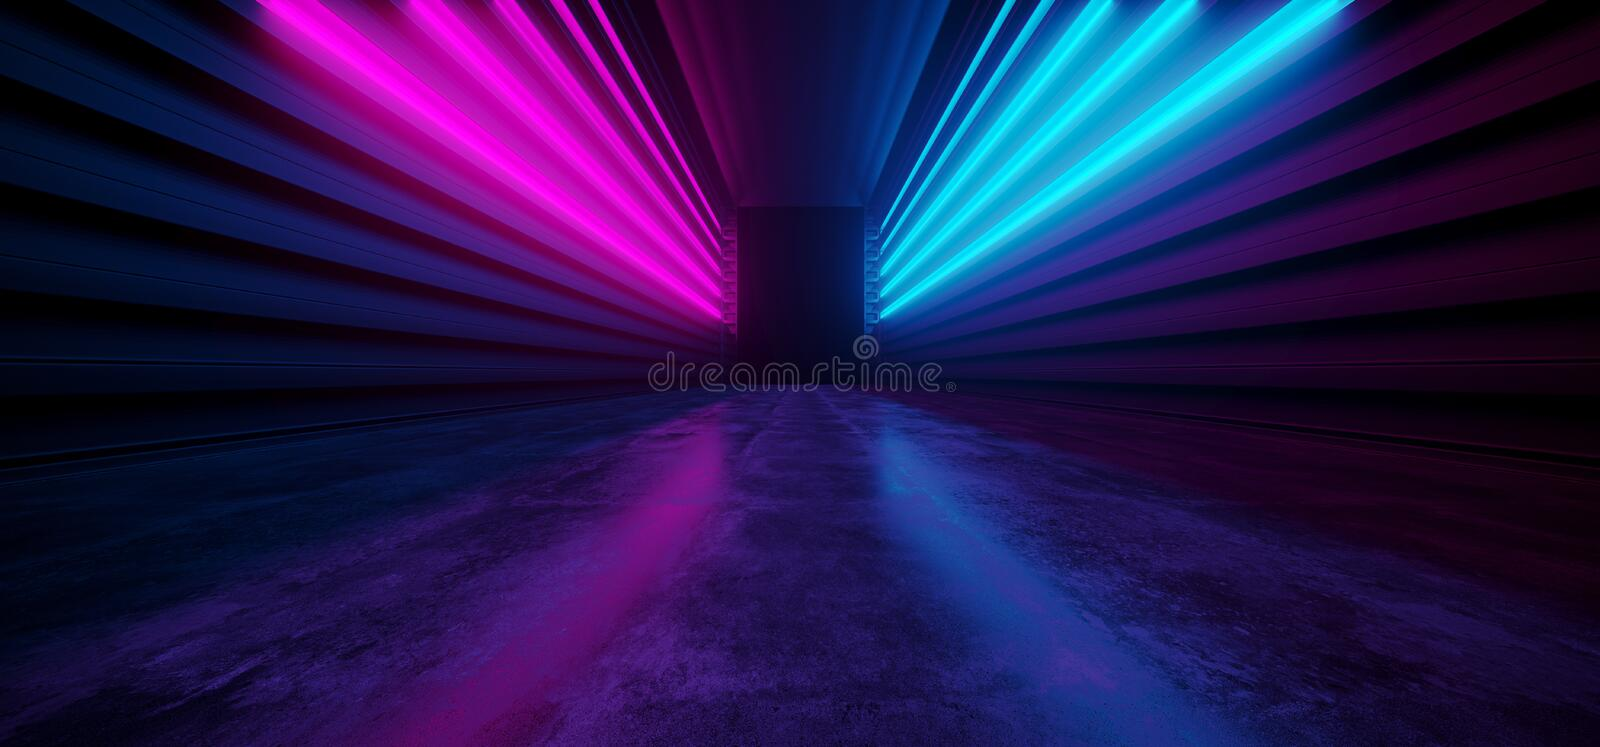 Neon Glowing Vibrant Sci Fi Futuristic Corridor Tunnel Purple Blue Pink Virtual Reality Dark Huge Hallway Entrance Concrete Grunge. Reflection Spaceship 3D vector illustration